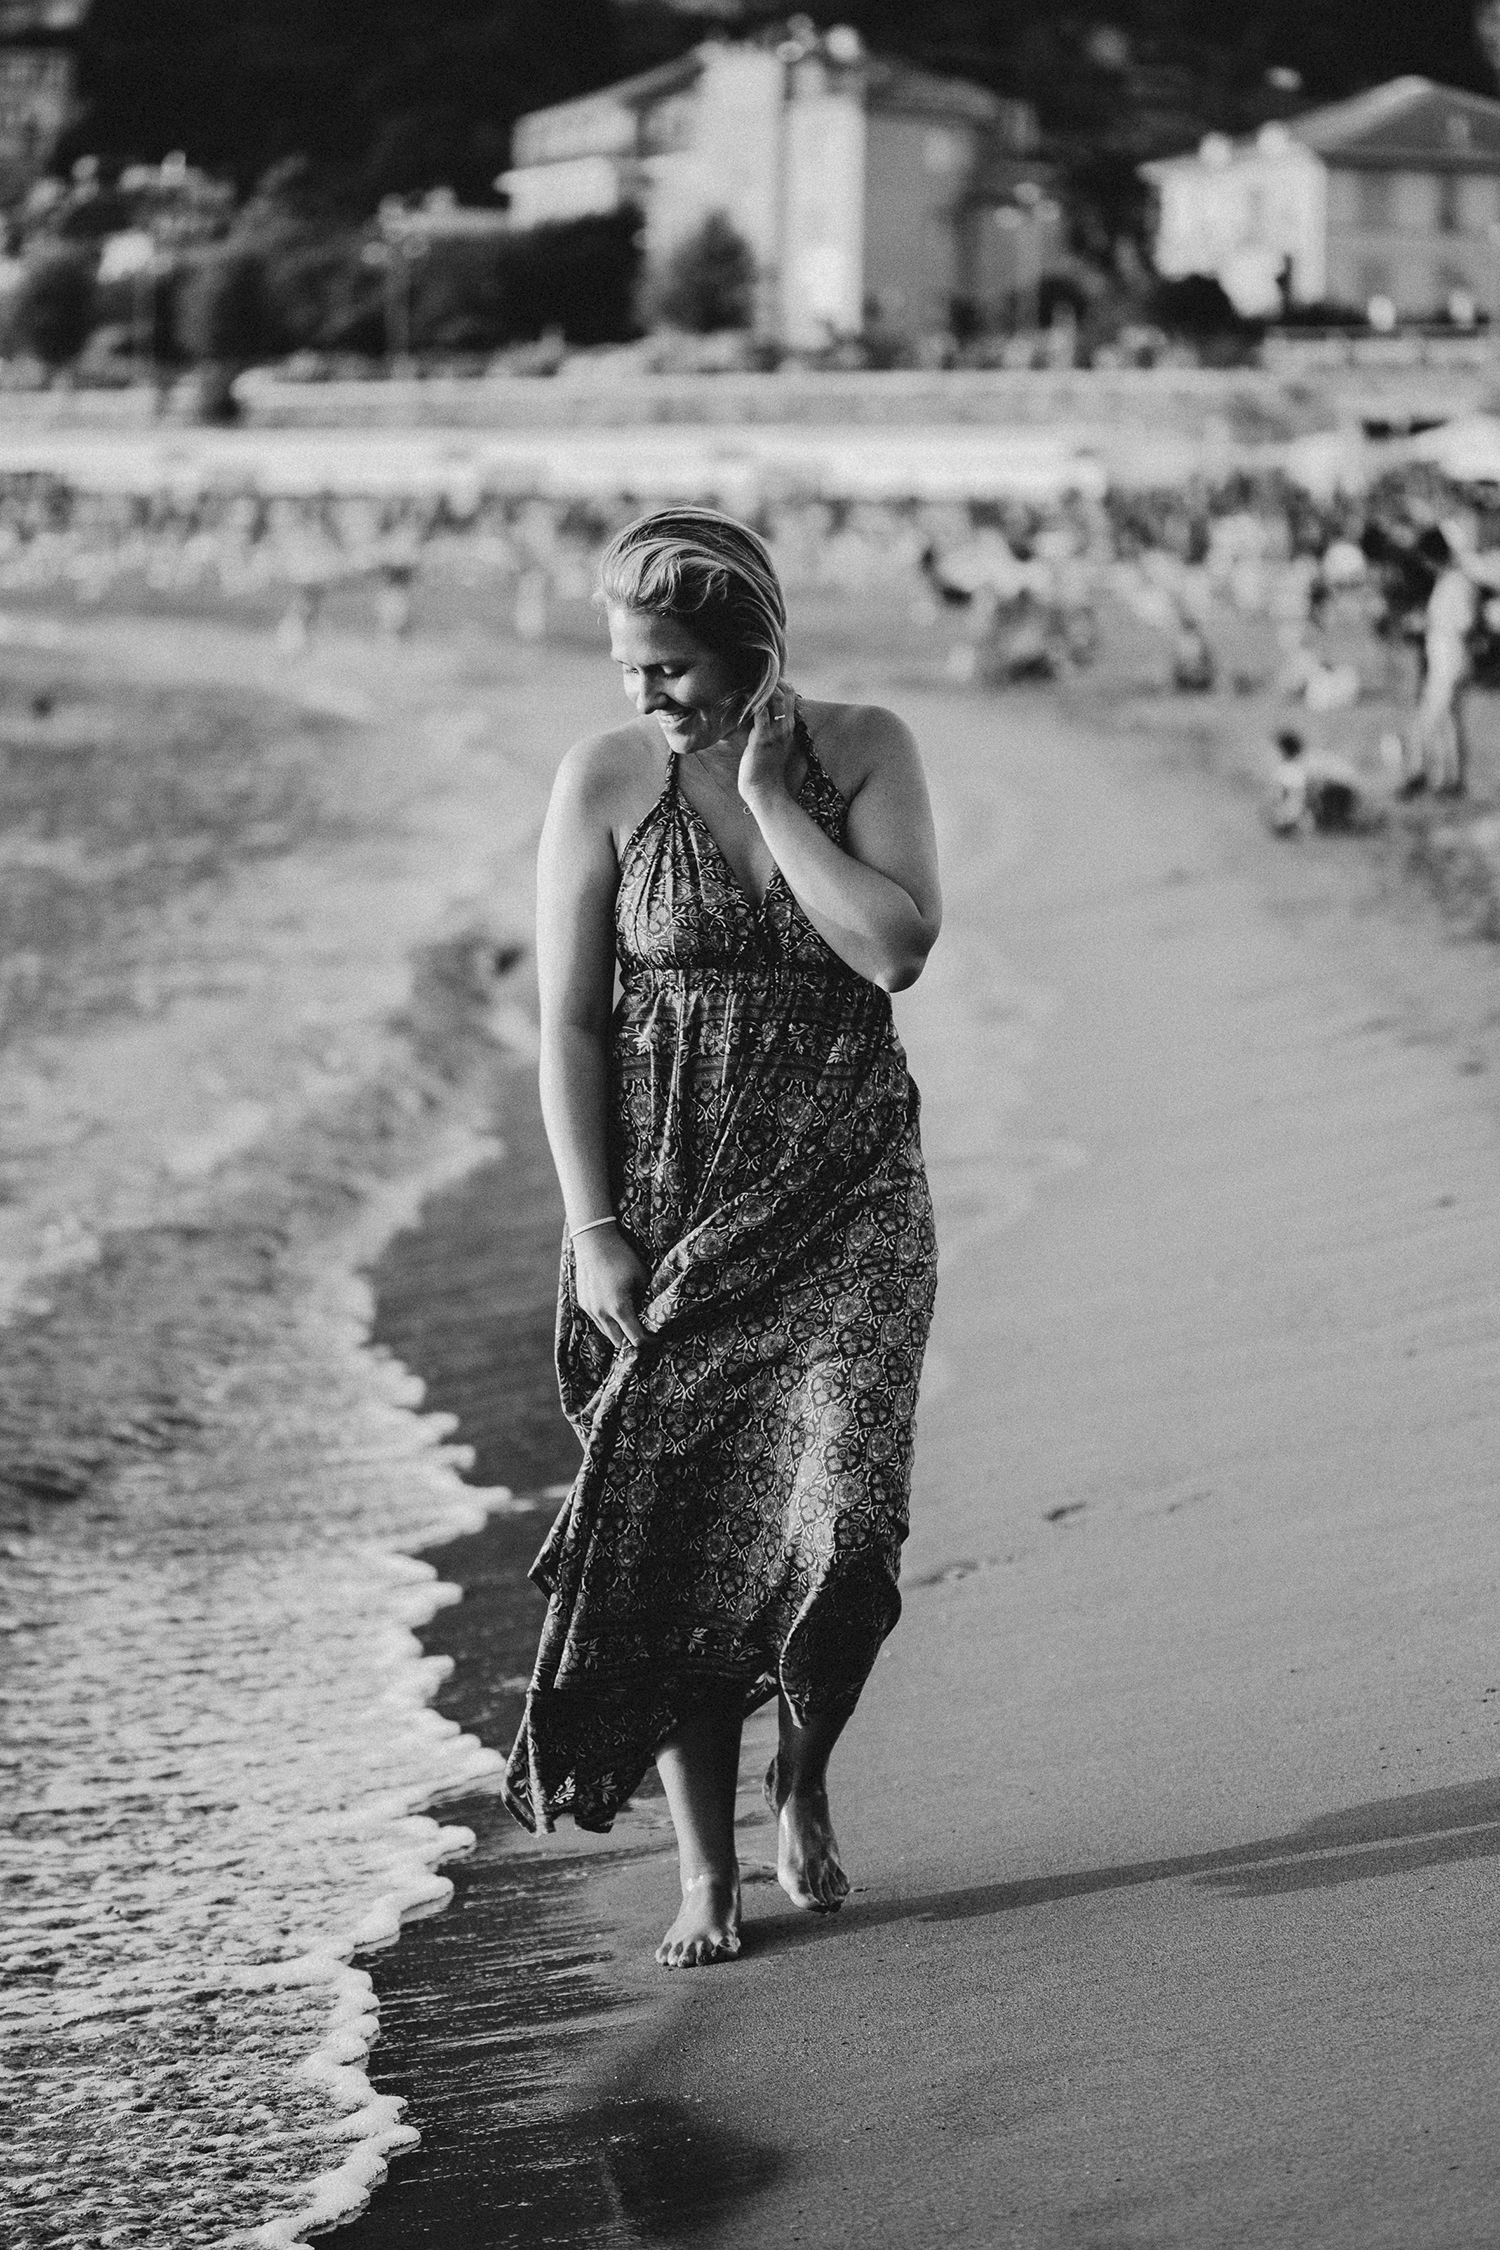 rebecca rinaldi photography. Family photographer in Italy. mom walking on  levanto beach at sunset.